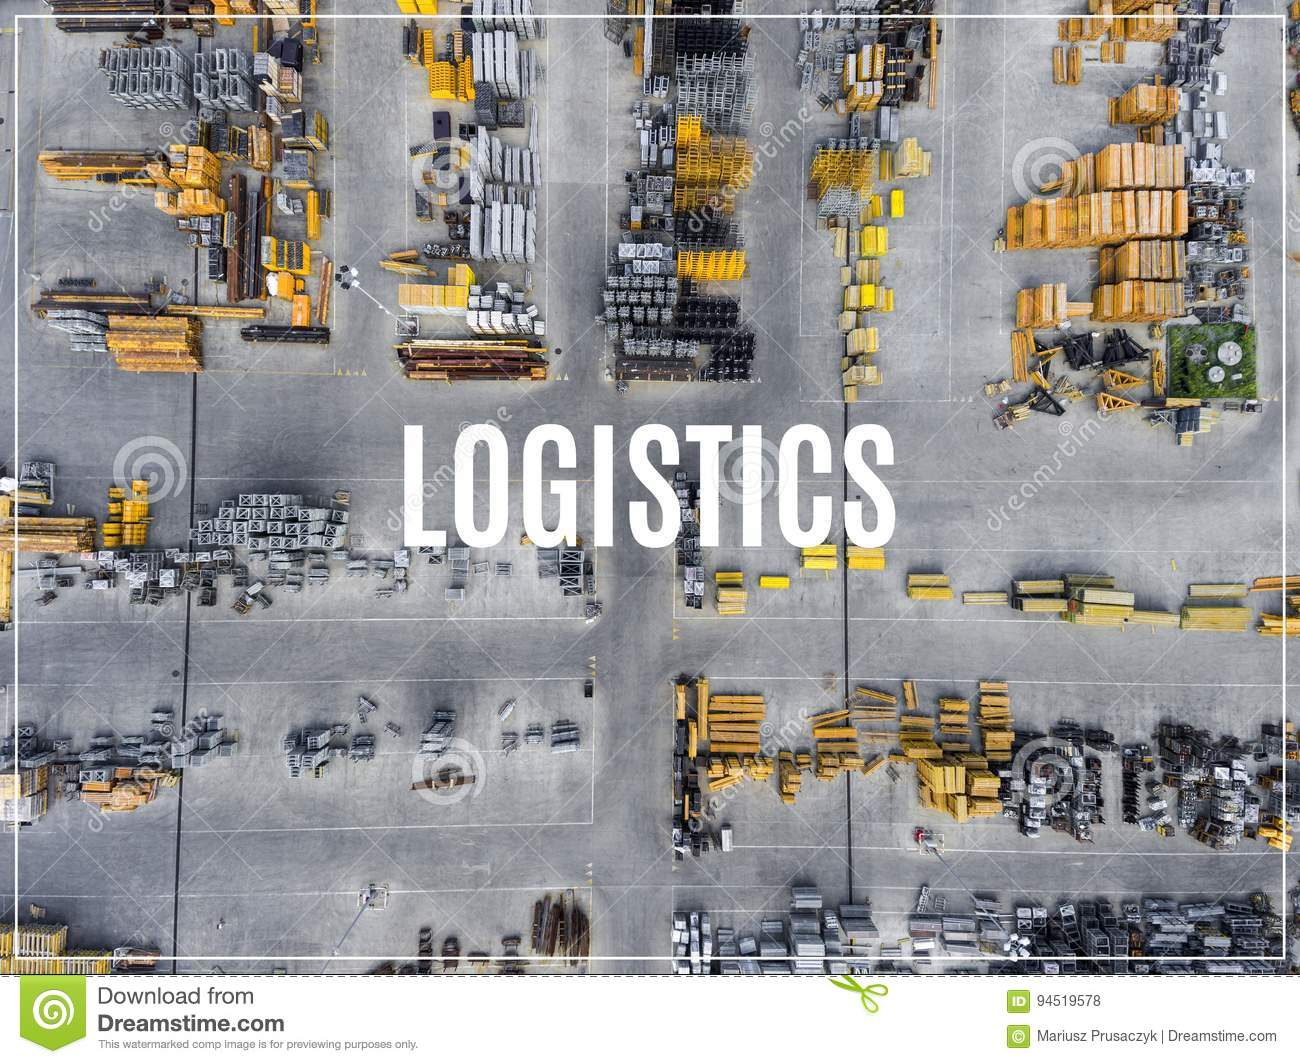 Word Logistics. Industrial storage place, view from above.